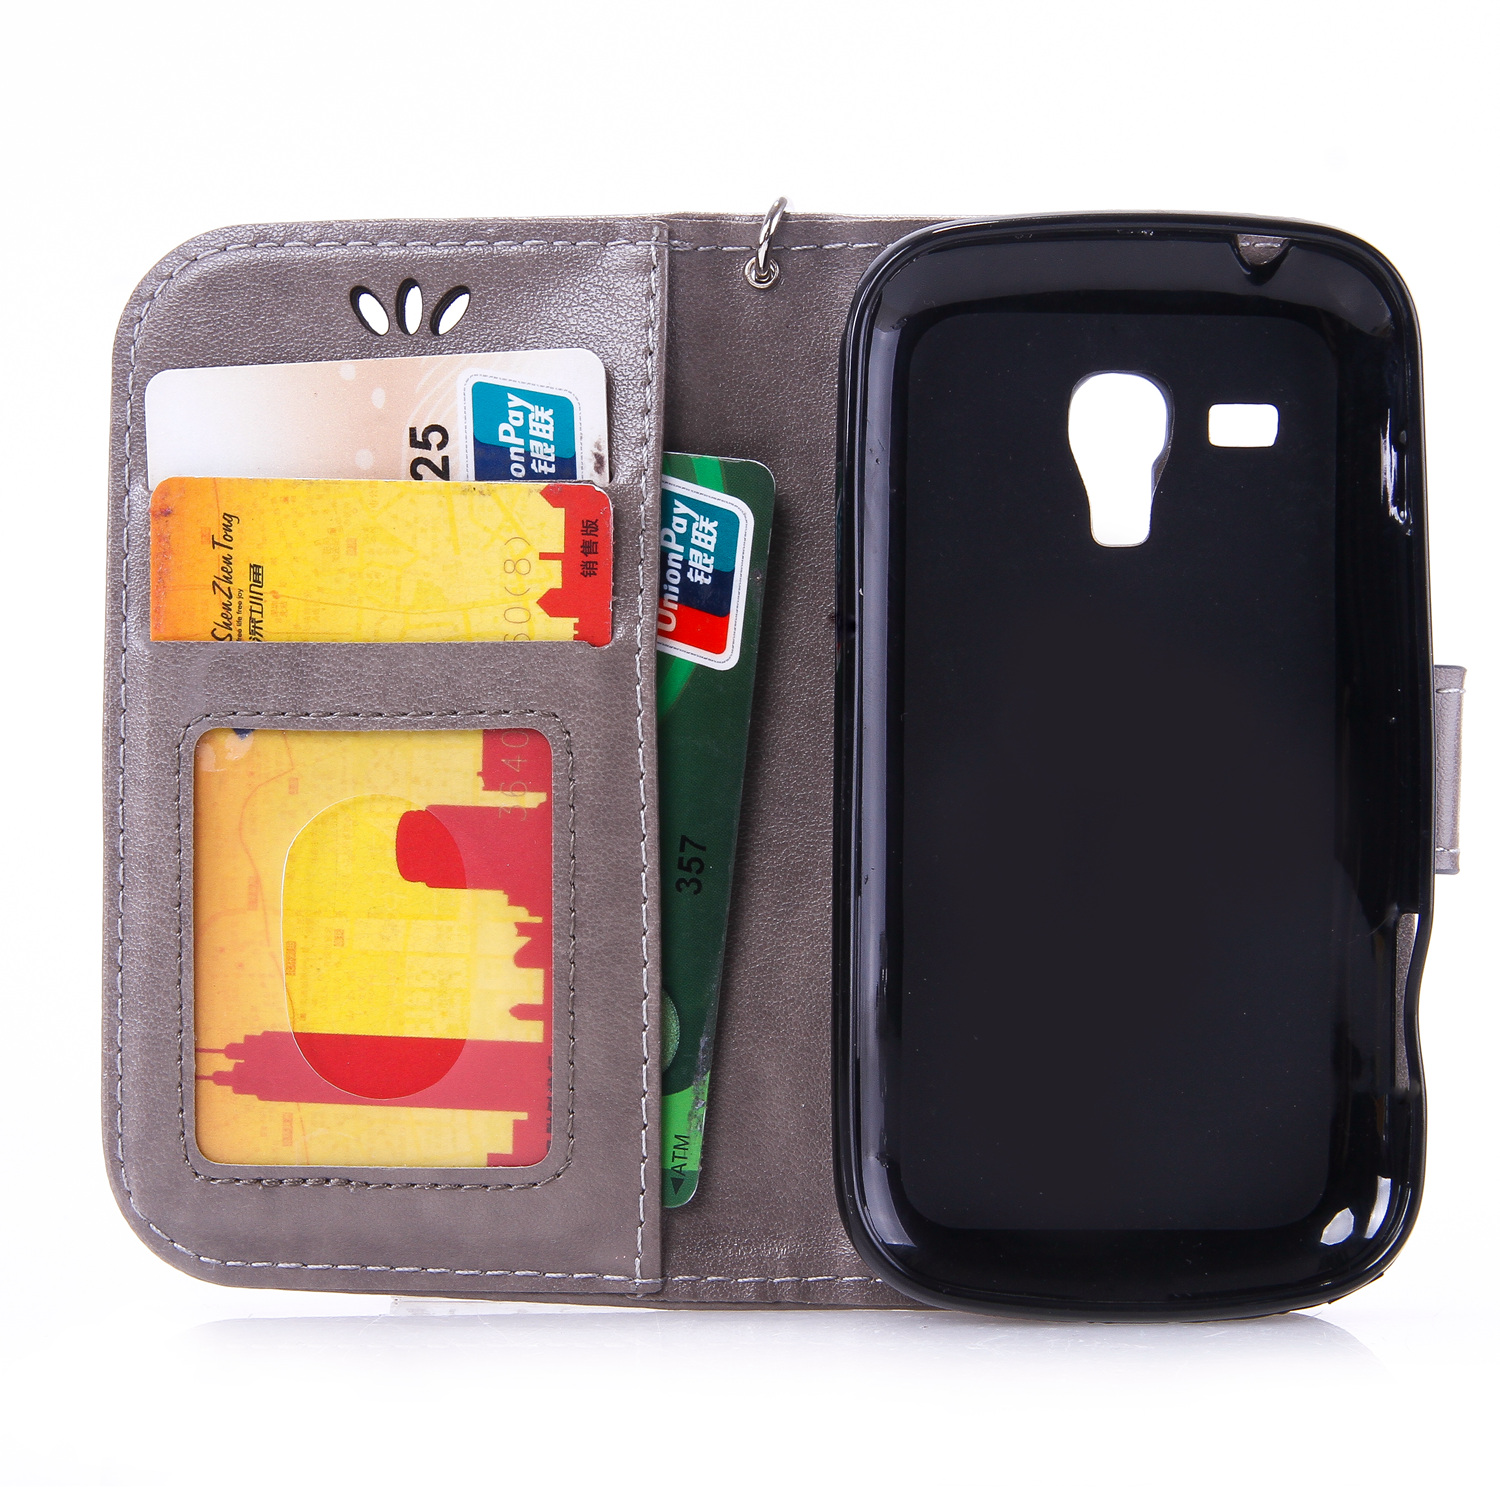 Flip Case for Samsung Galaxy Trend Plus S7580 S 7580 GT S7580 Phone Leather Cover for Galaxy Trend 2 Duos S7572 S 7572 GT S7572 in Flip Cases from